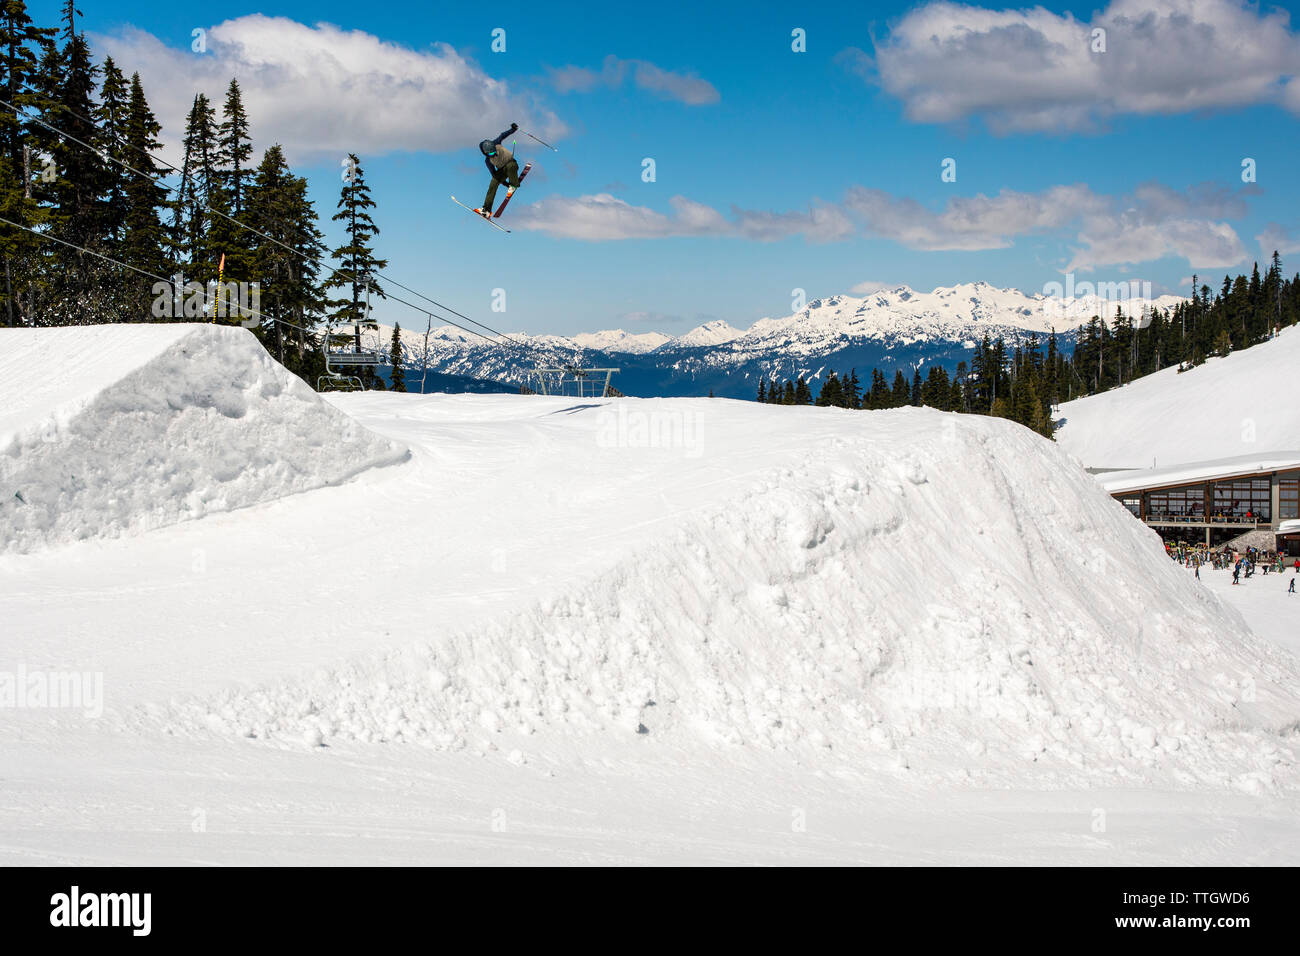 A man hits a jump on skis in the terrain park at Whistler Blackcomb. - Stock Image